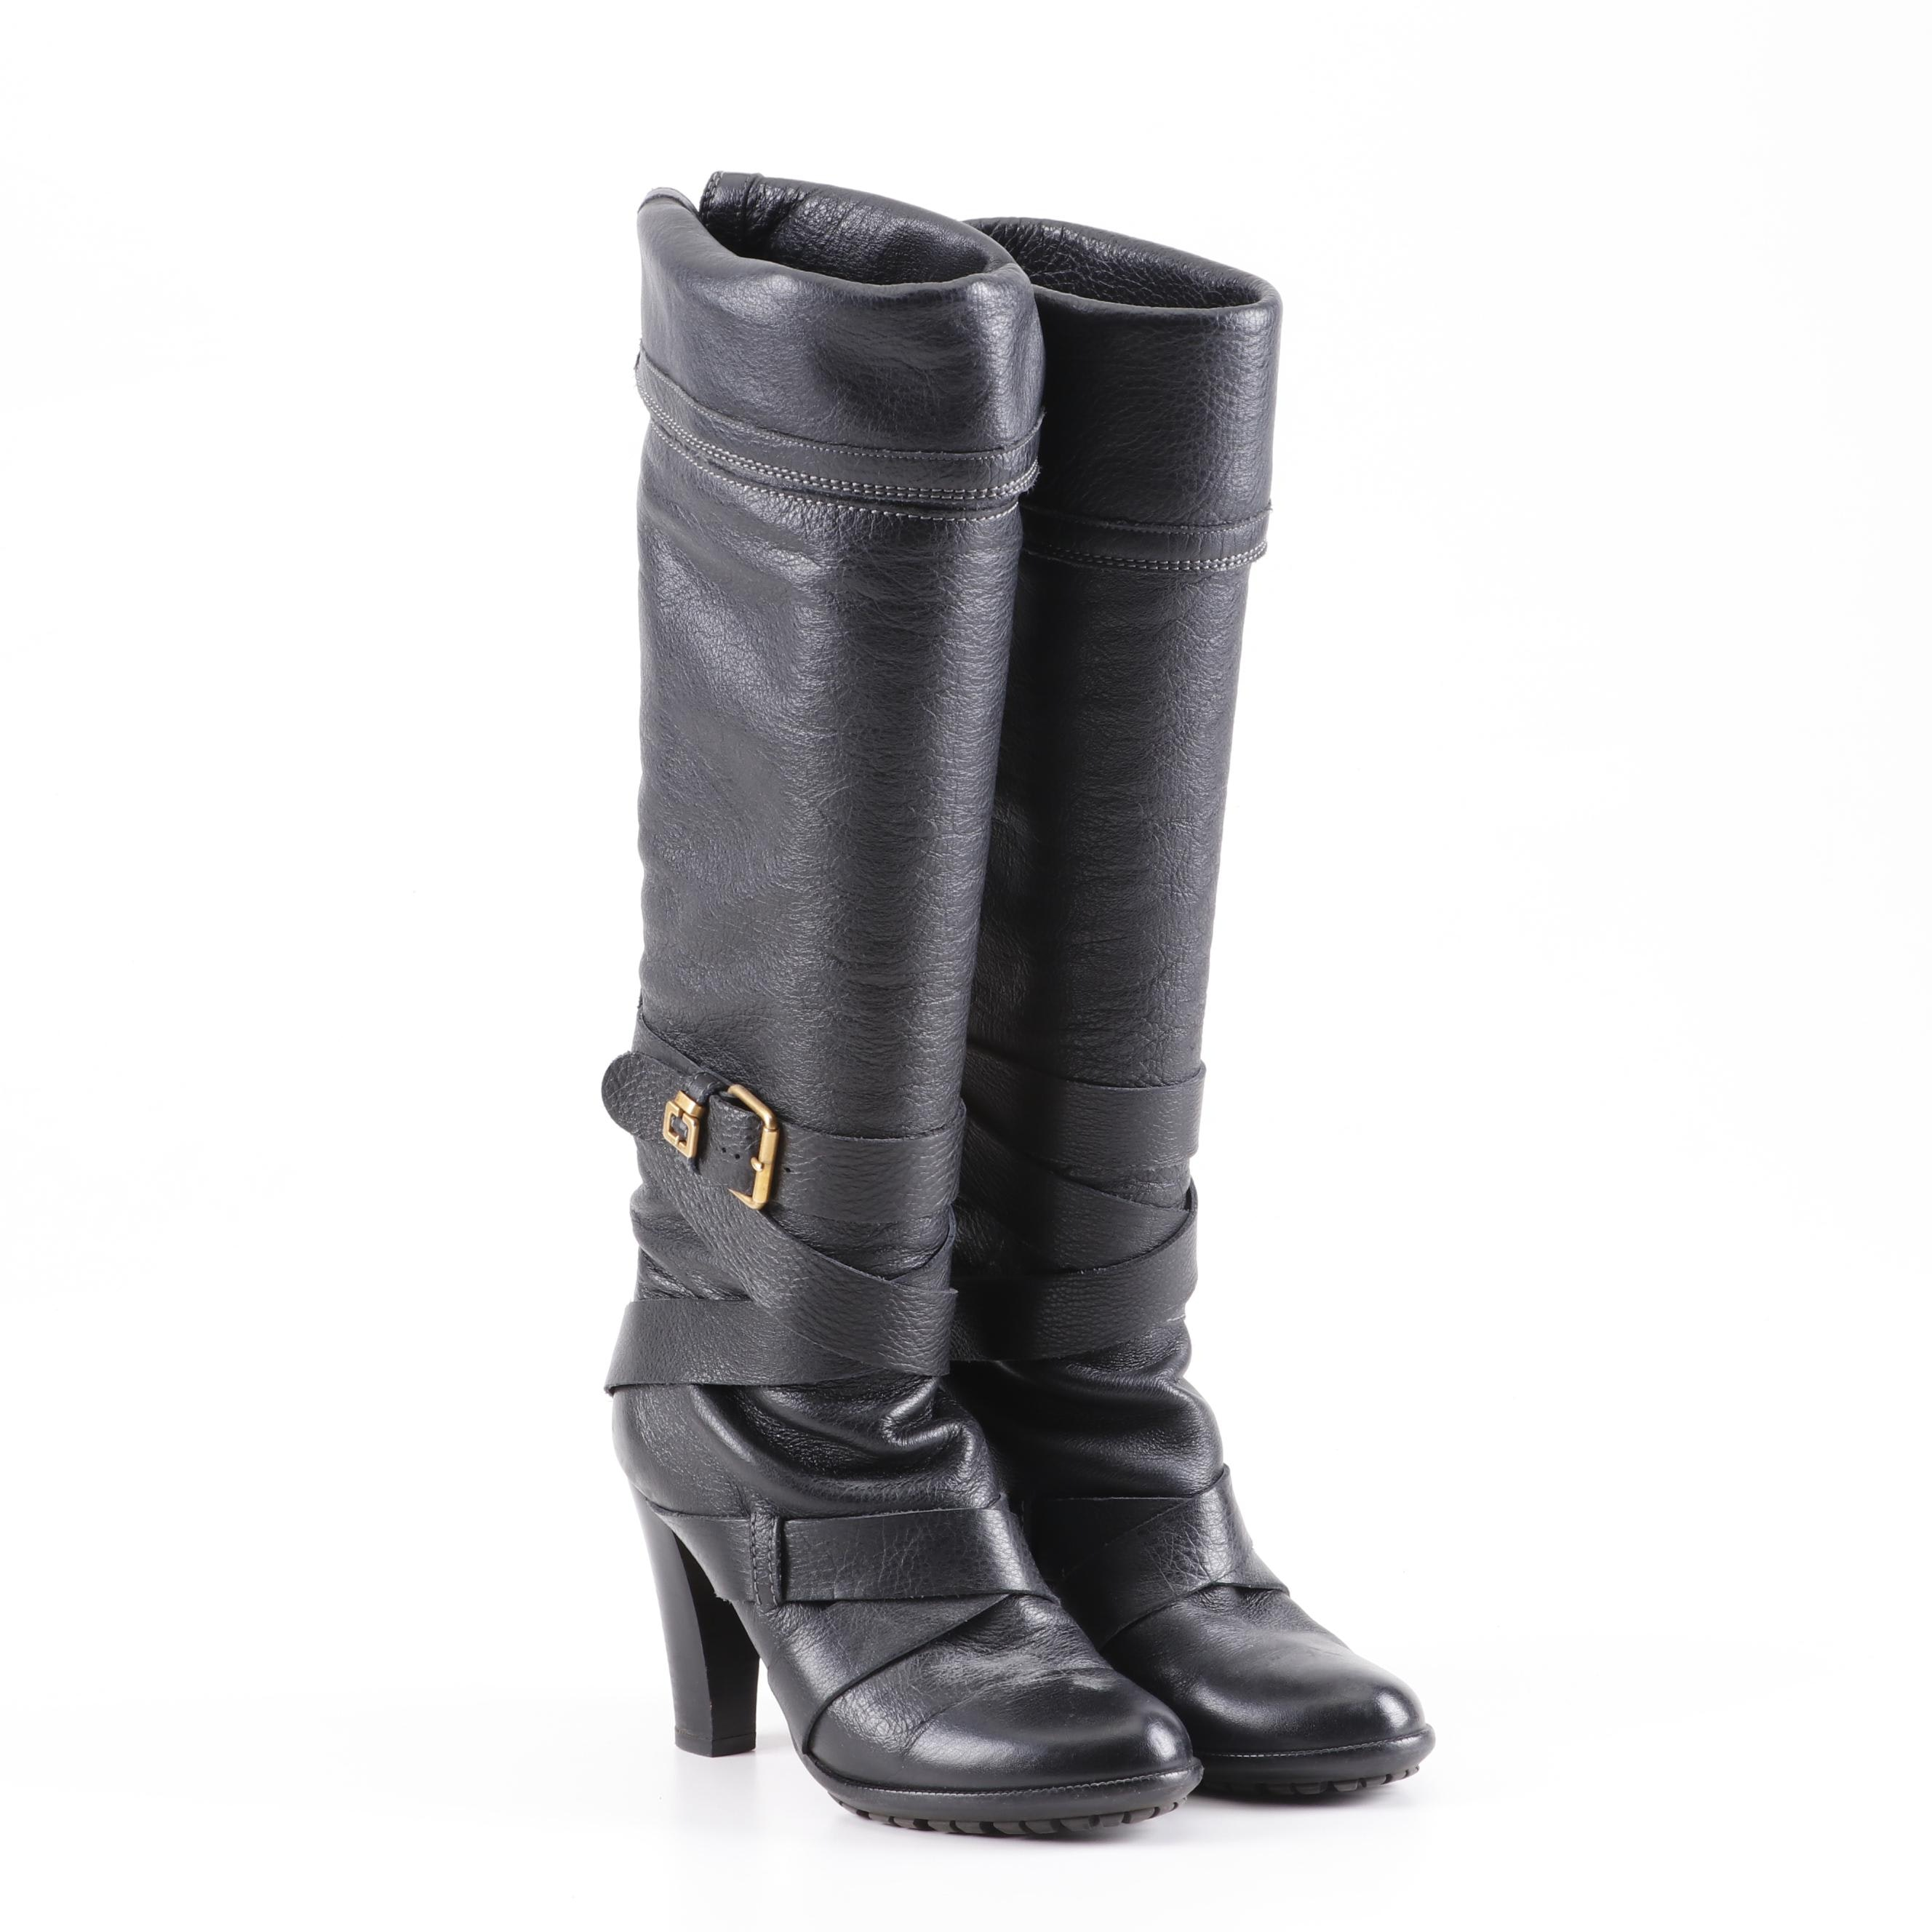 Women's Chloé Black Leather Knee-High Boots, Made in Italy